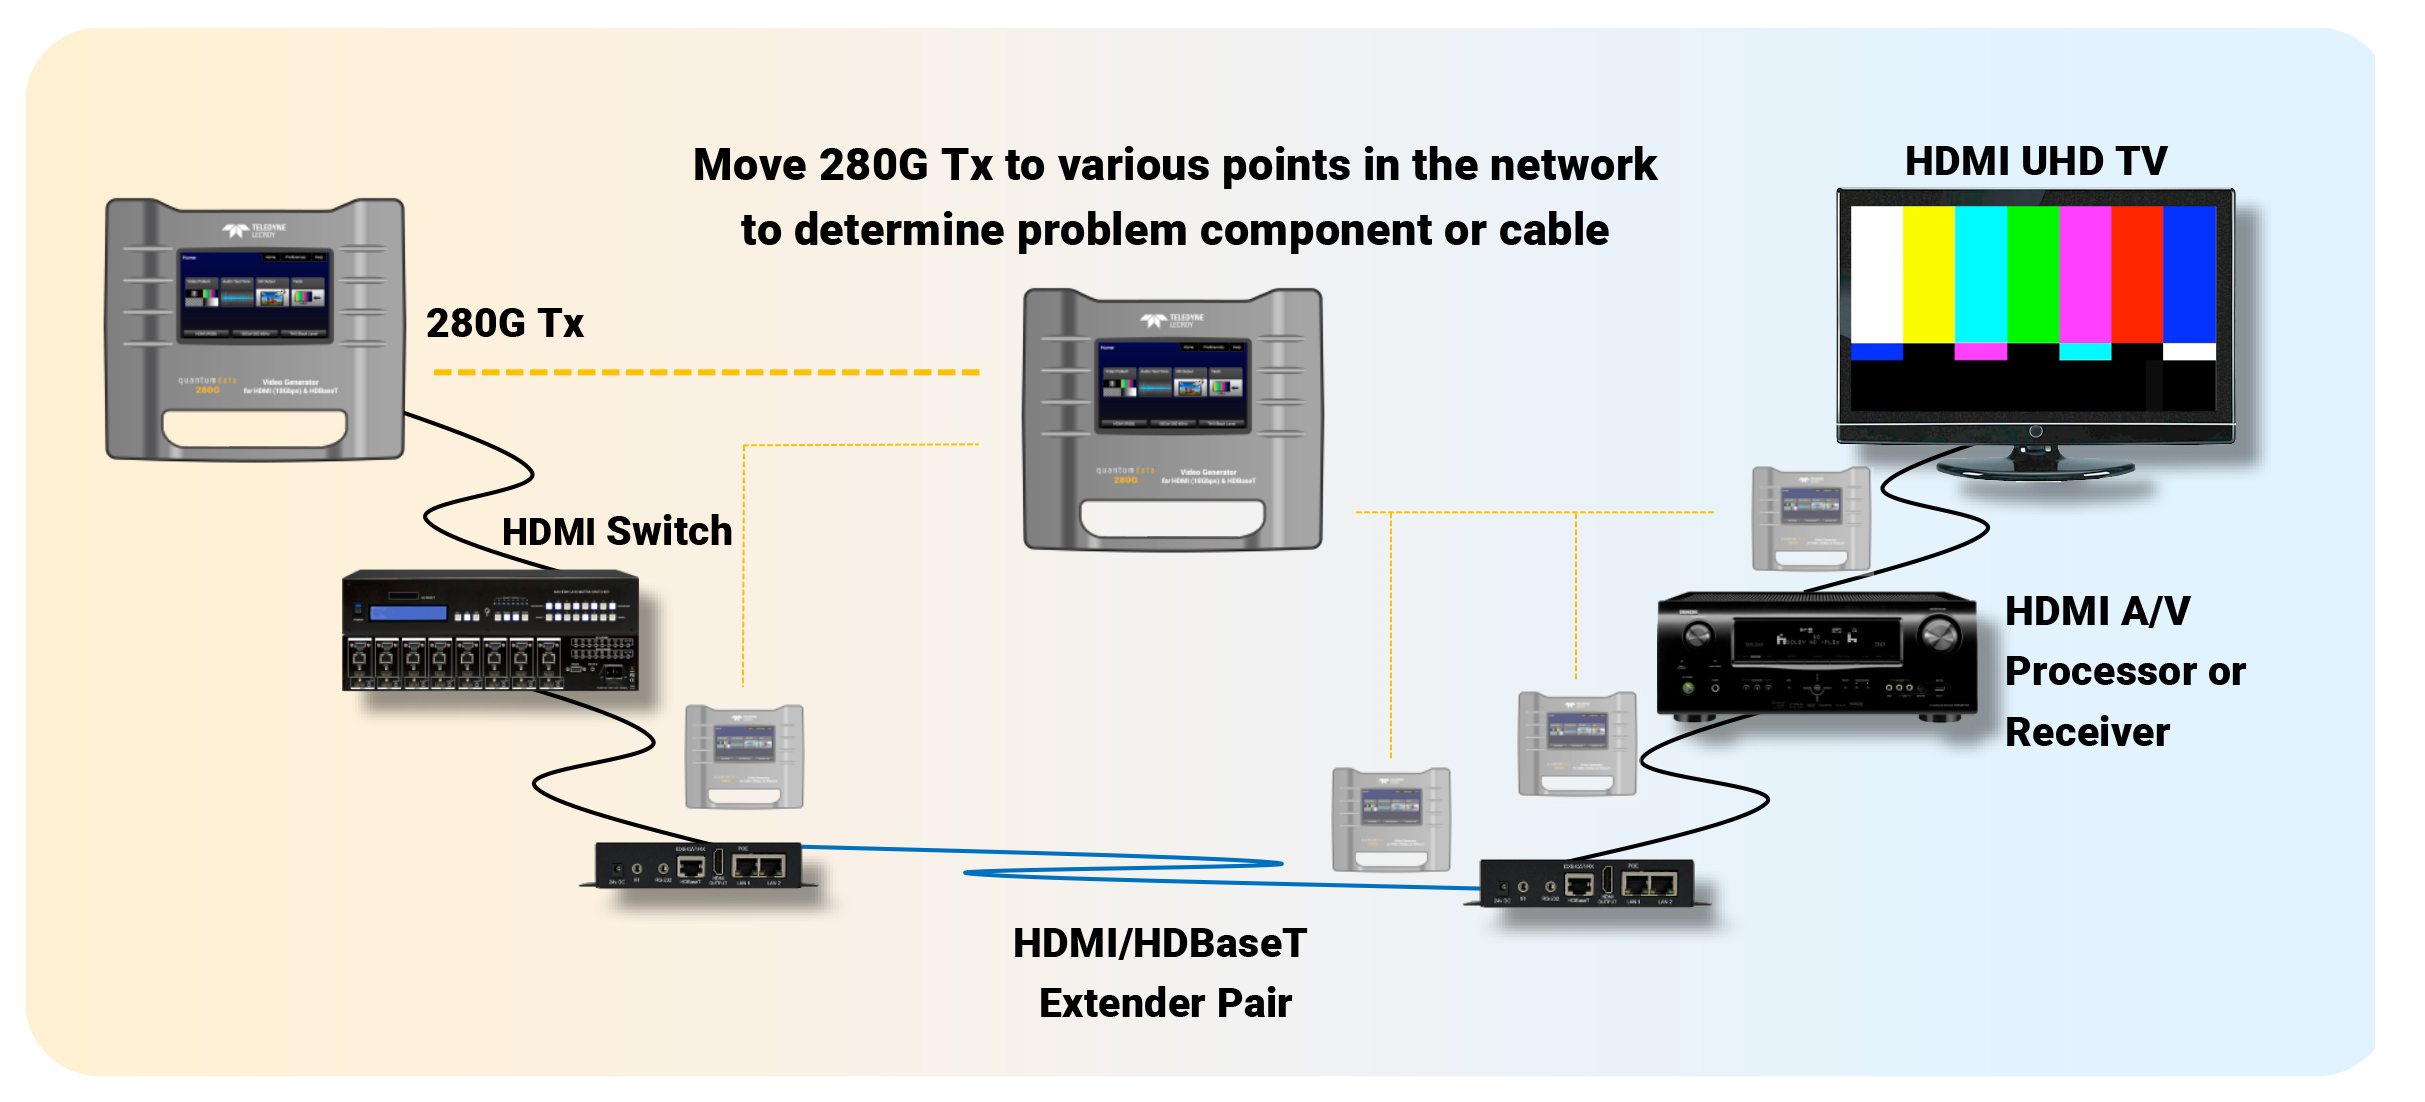 Installing Verifying And Troubleshooting Ultra Hd Video Components Of A Structured Wiring System Segmenting The Network Enables You To Determine Where Failure Occursto Identify Problem Device Or Cable